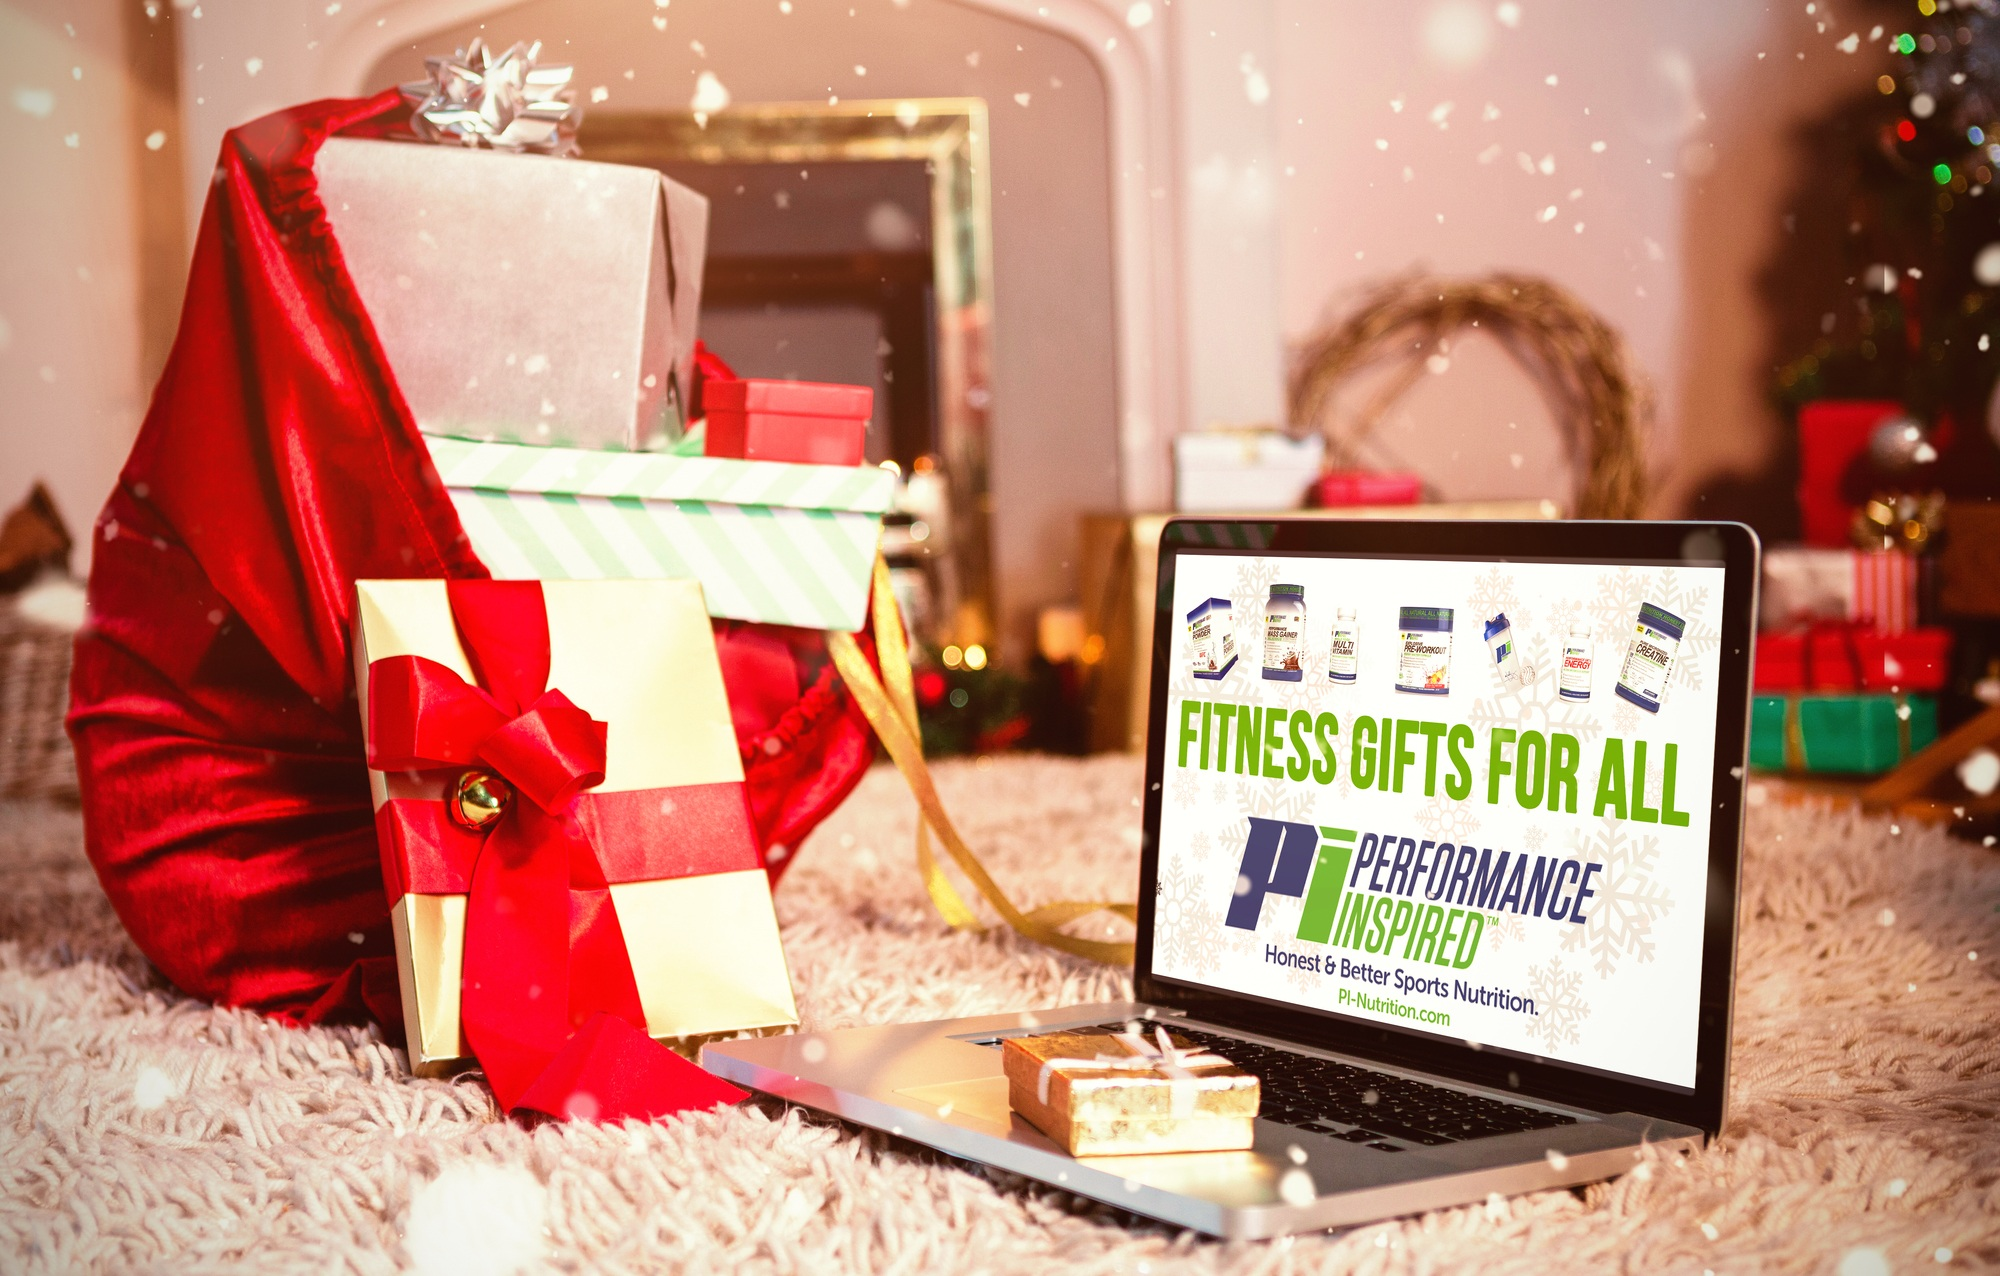 FITNESS GIFTS FOR ALL